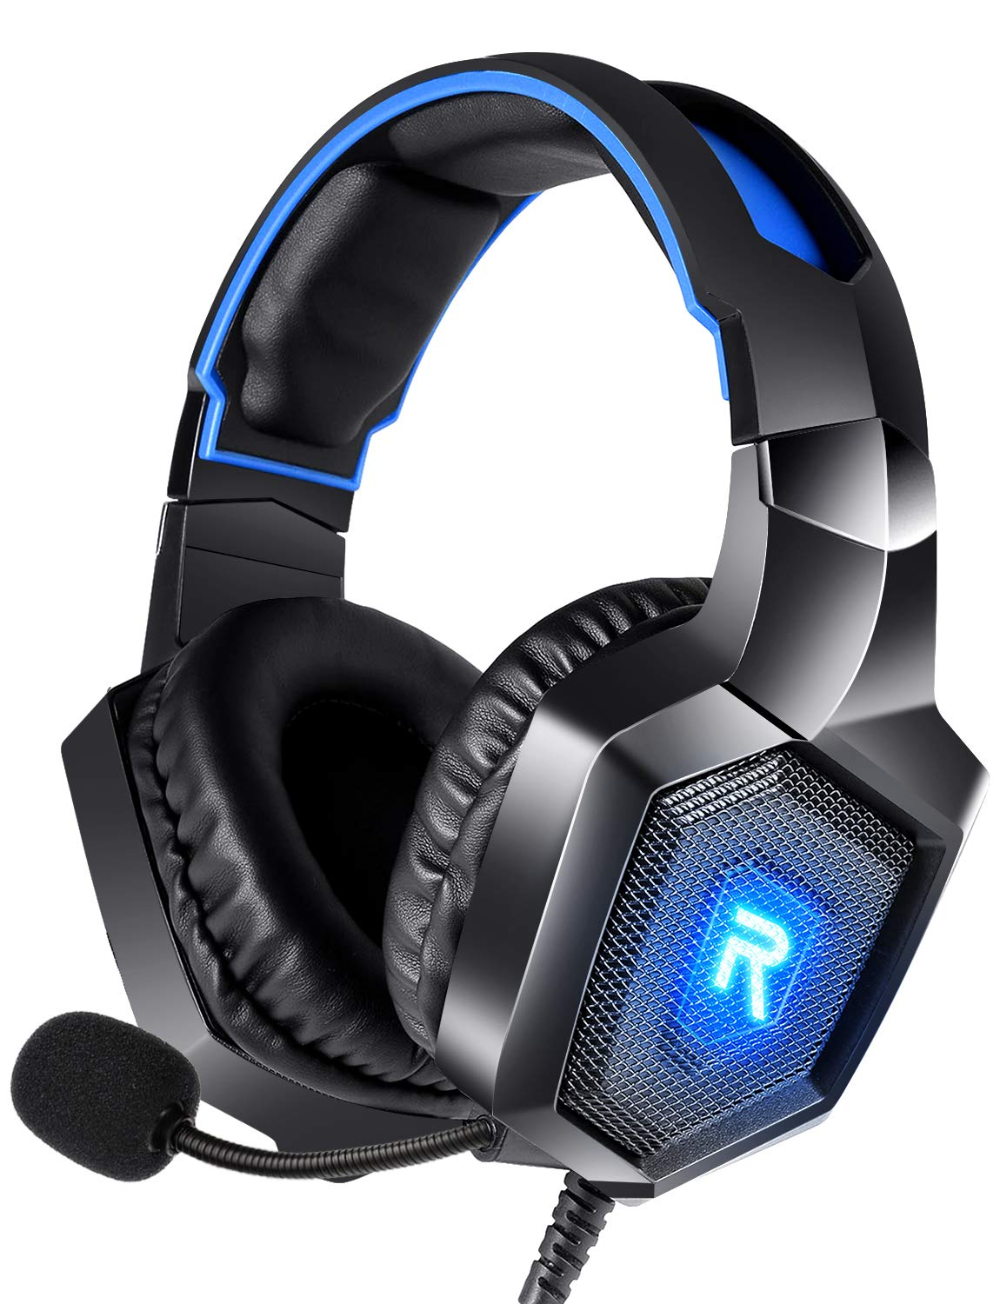 Runmus Gaming Headset Ps4 Headset With 7 1 Surround Sound Xbox One Headset W Noise Canceling Microphone Led Light Compatible With Ps4 Xbox One Switch Pc Xbox One Headset Gaming Headset Ps4